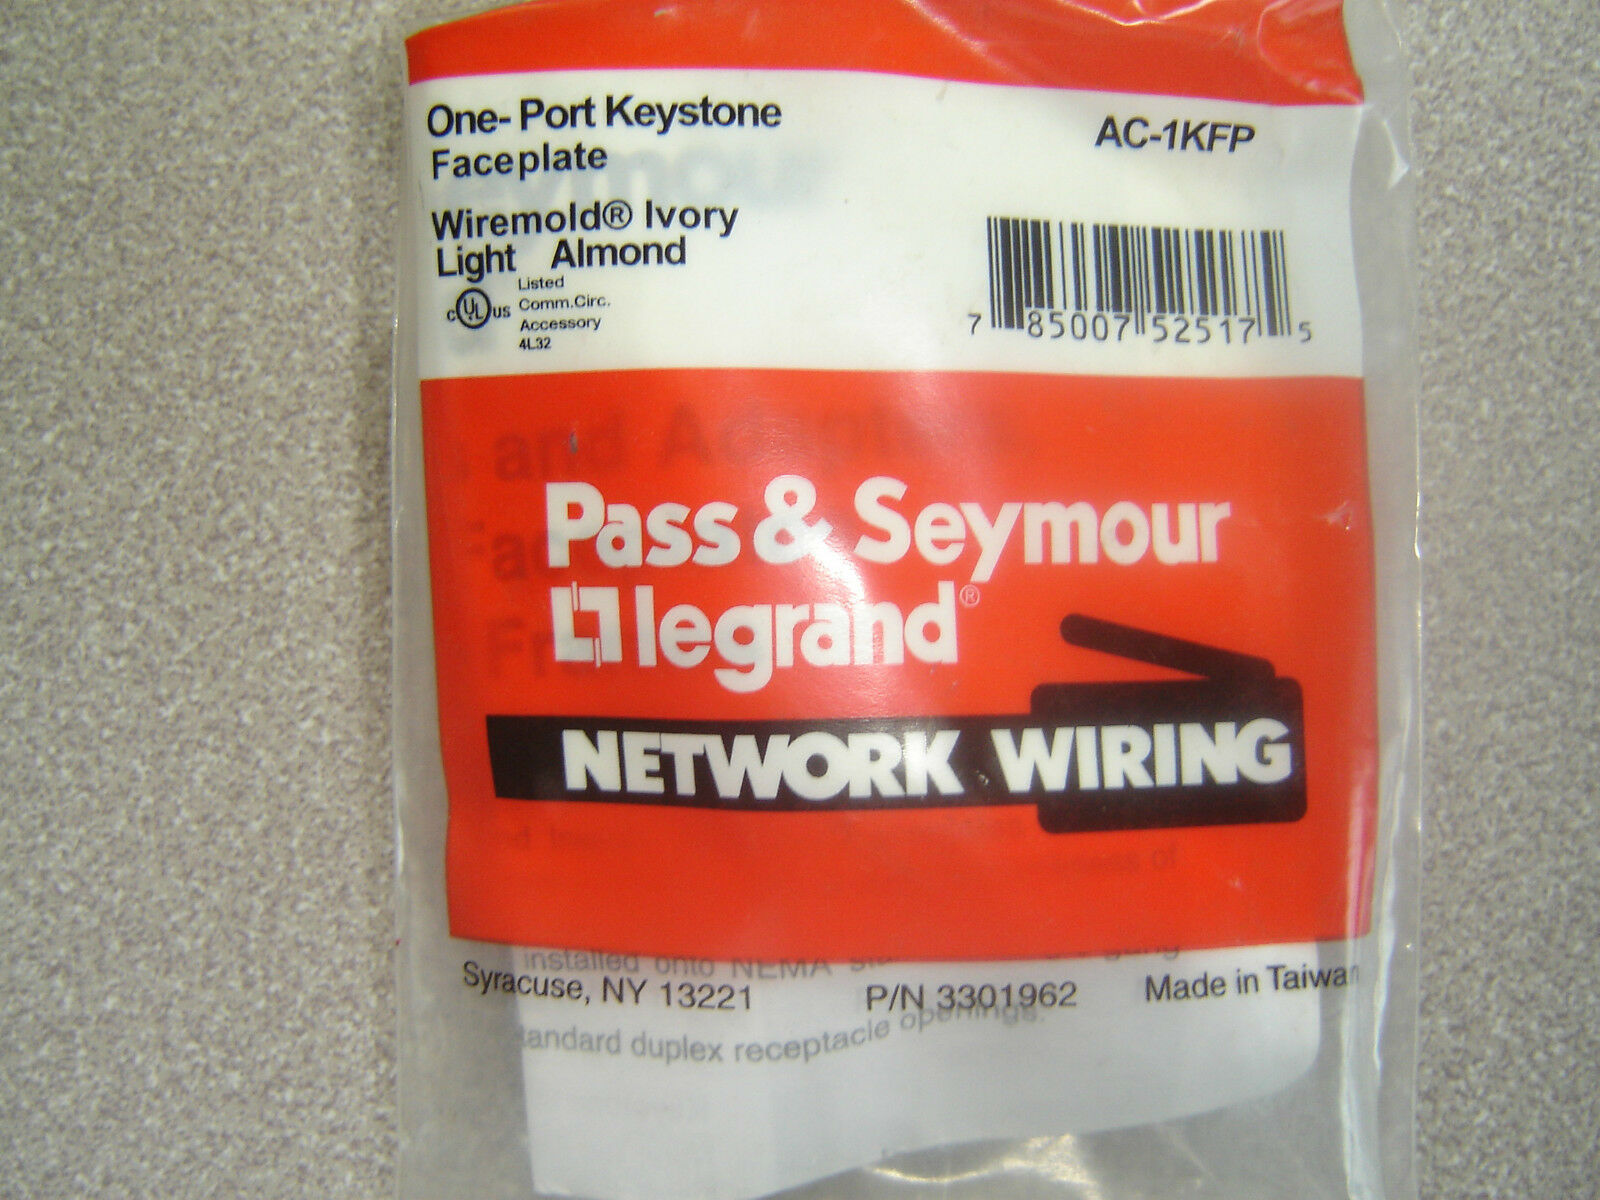 Ac 1kfp One Port Keystone Faceplate Light Almond Ivory Network Wiring Picture 1 Of 4